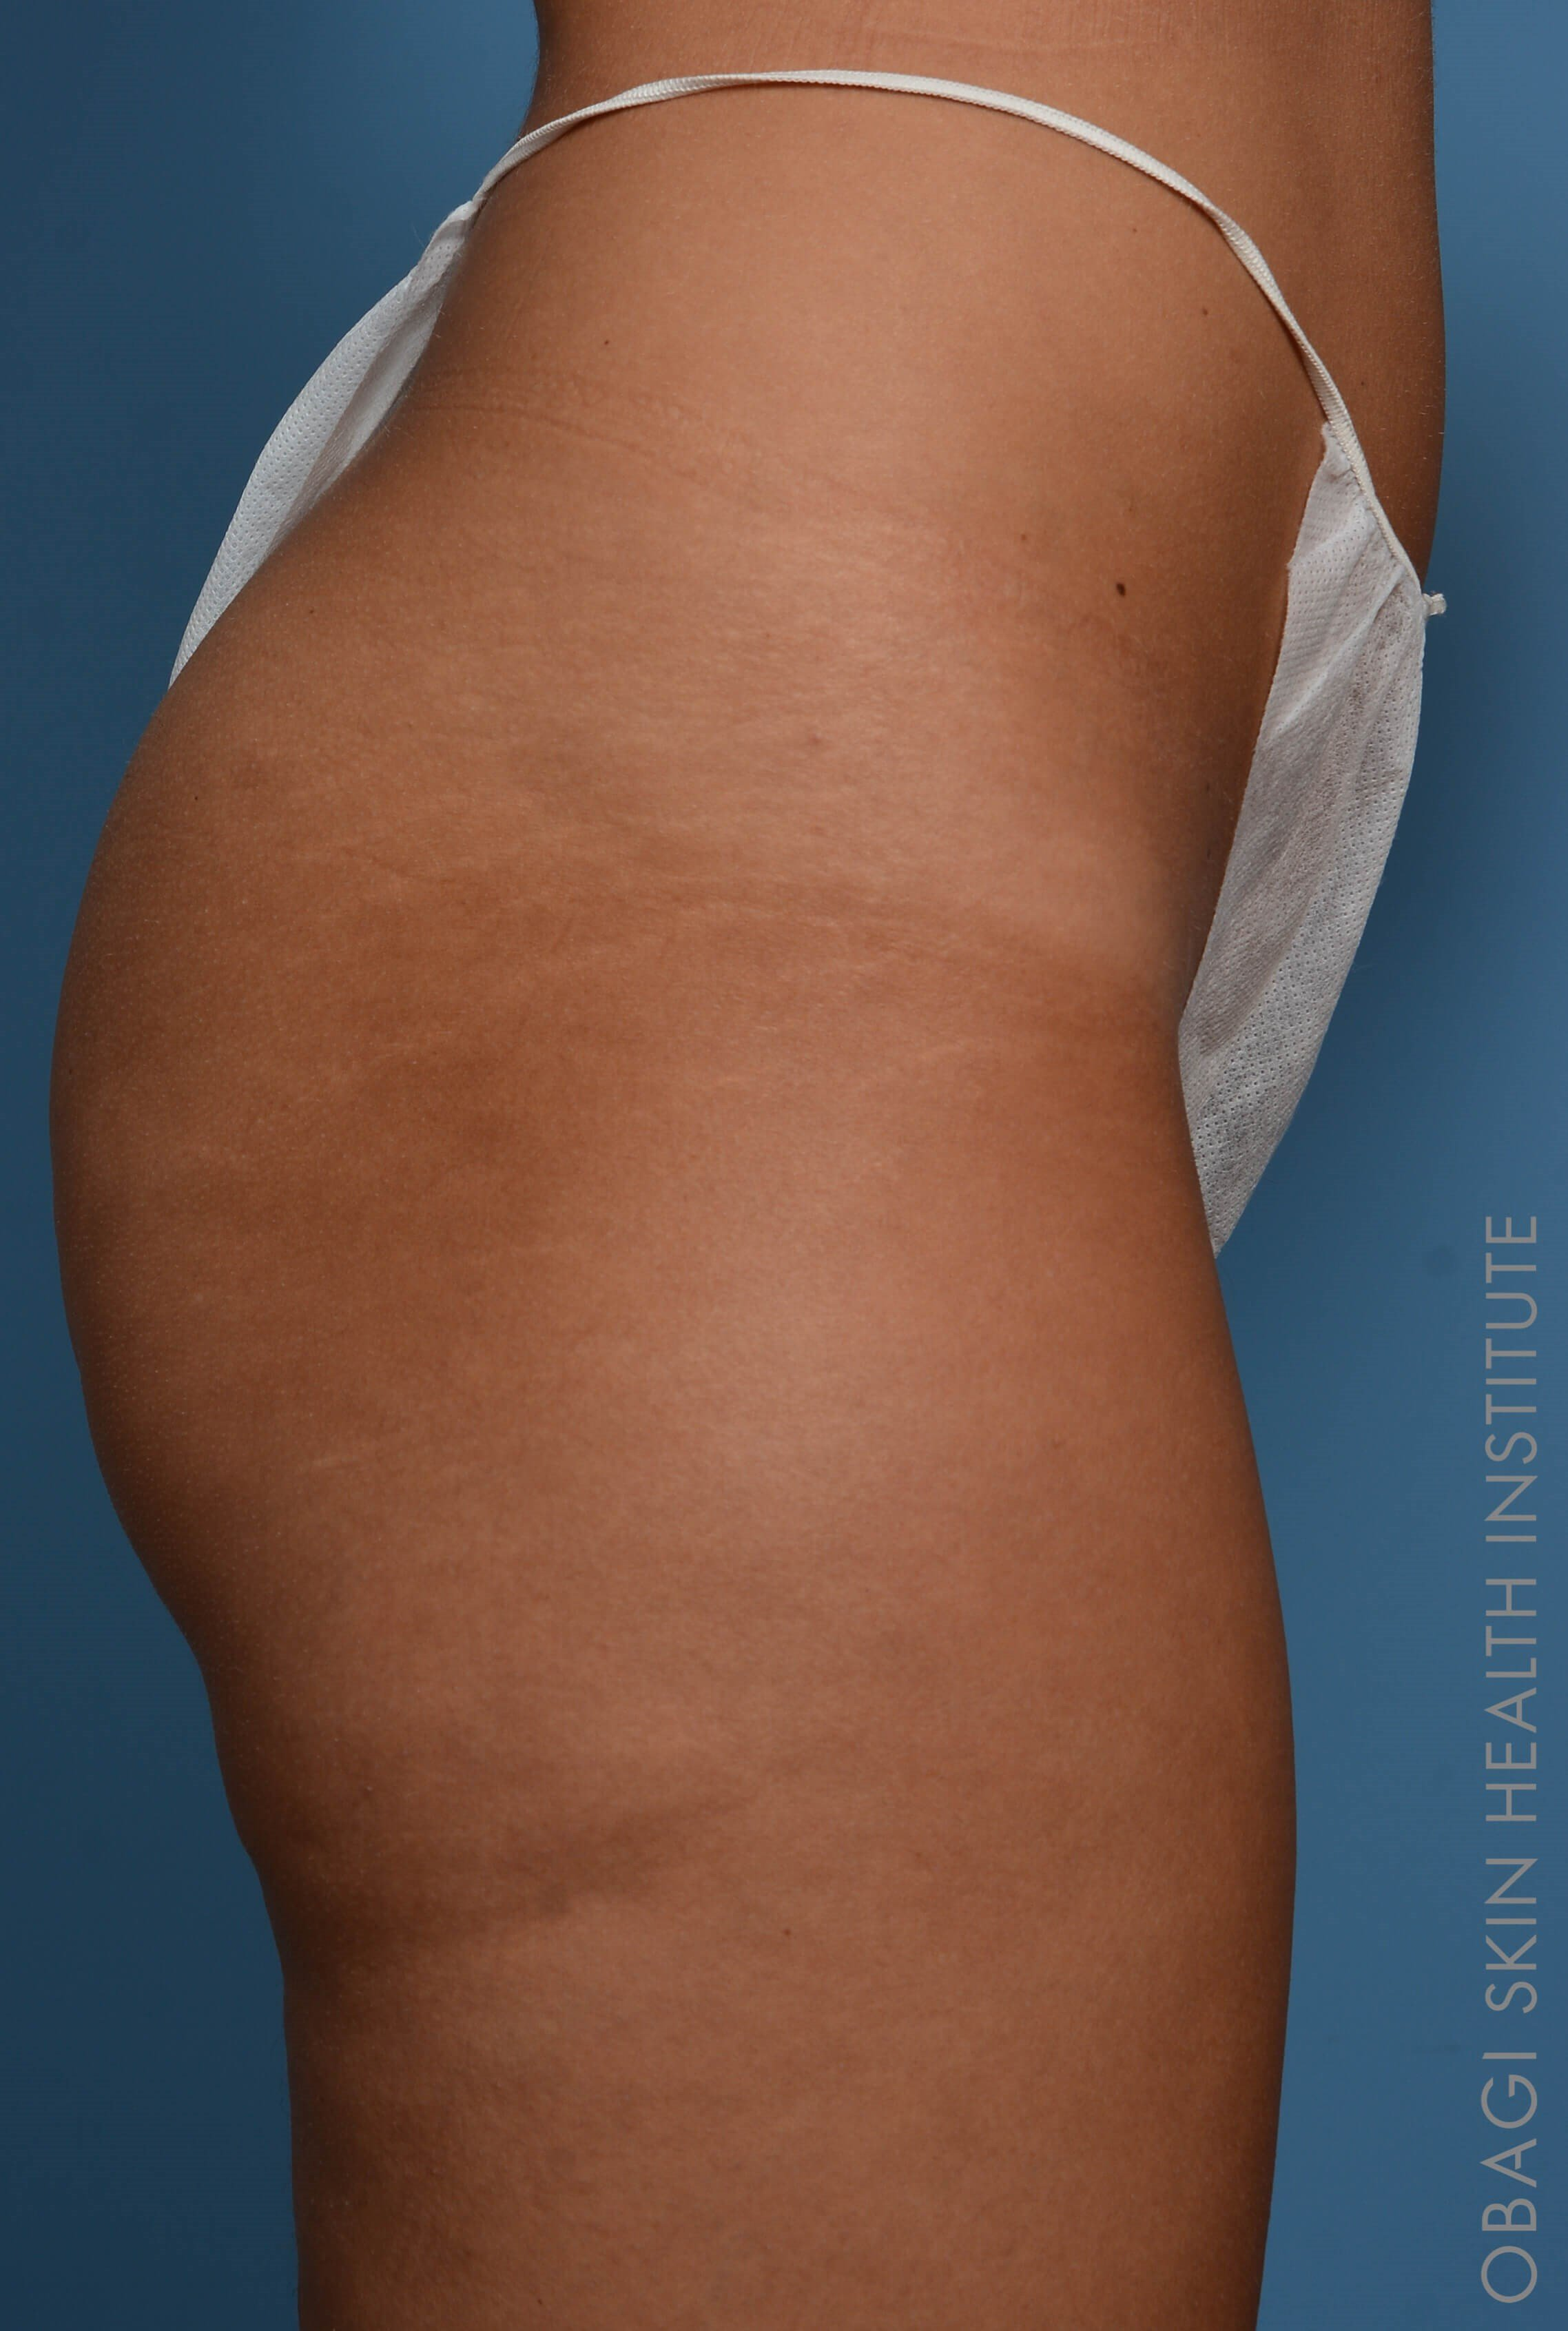 Sculptra Butt Lift - Right Before Sculptra Butt Lift